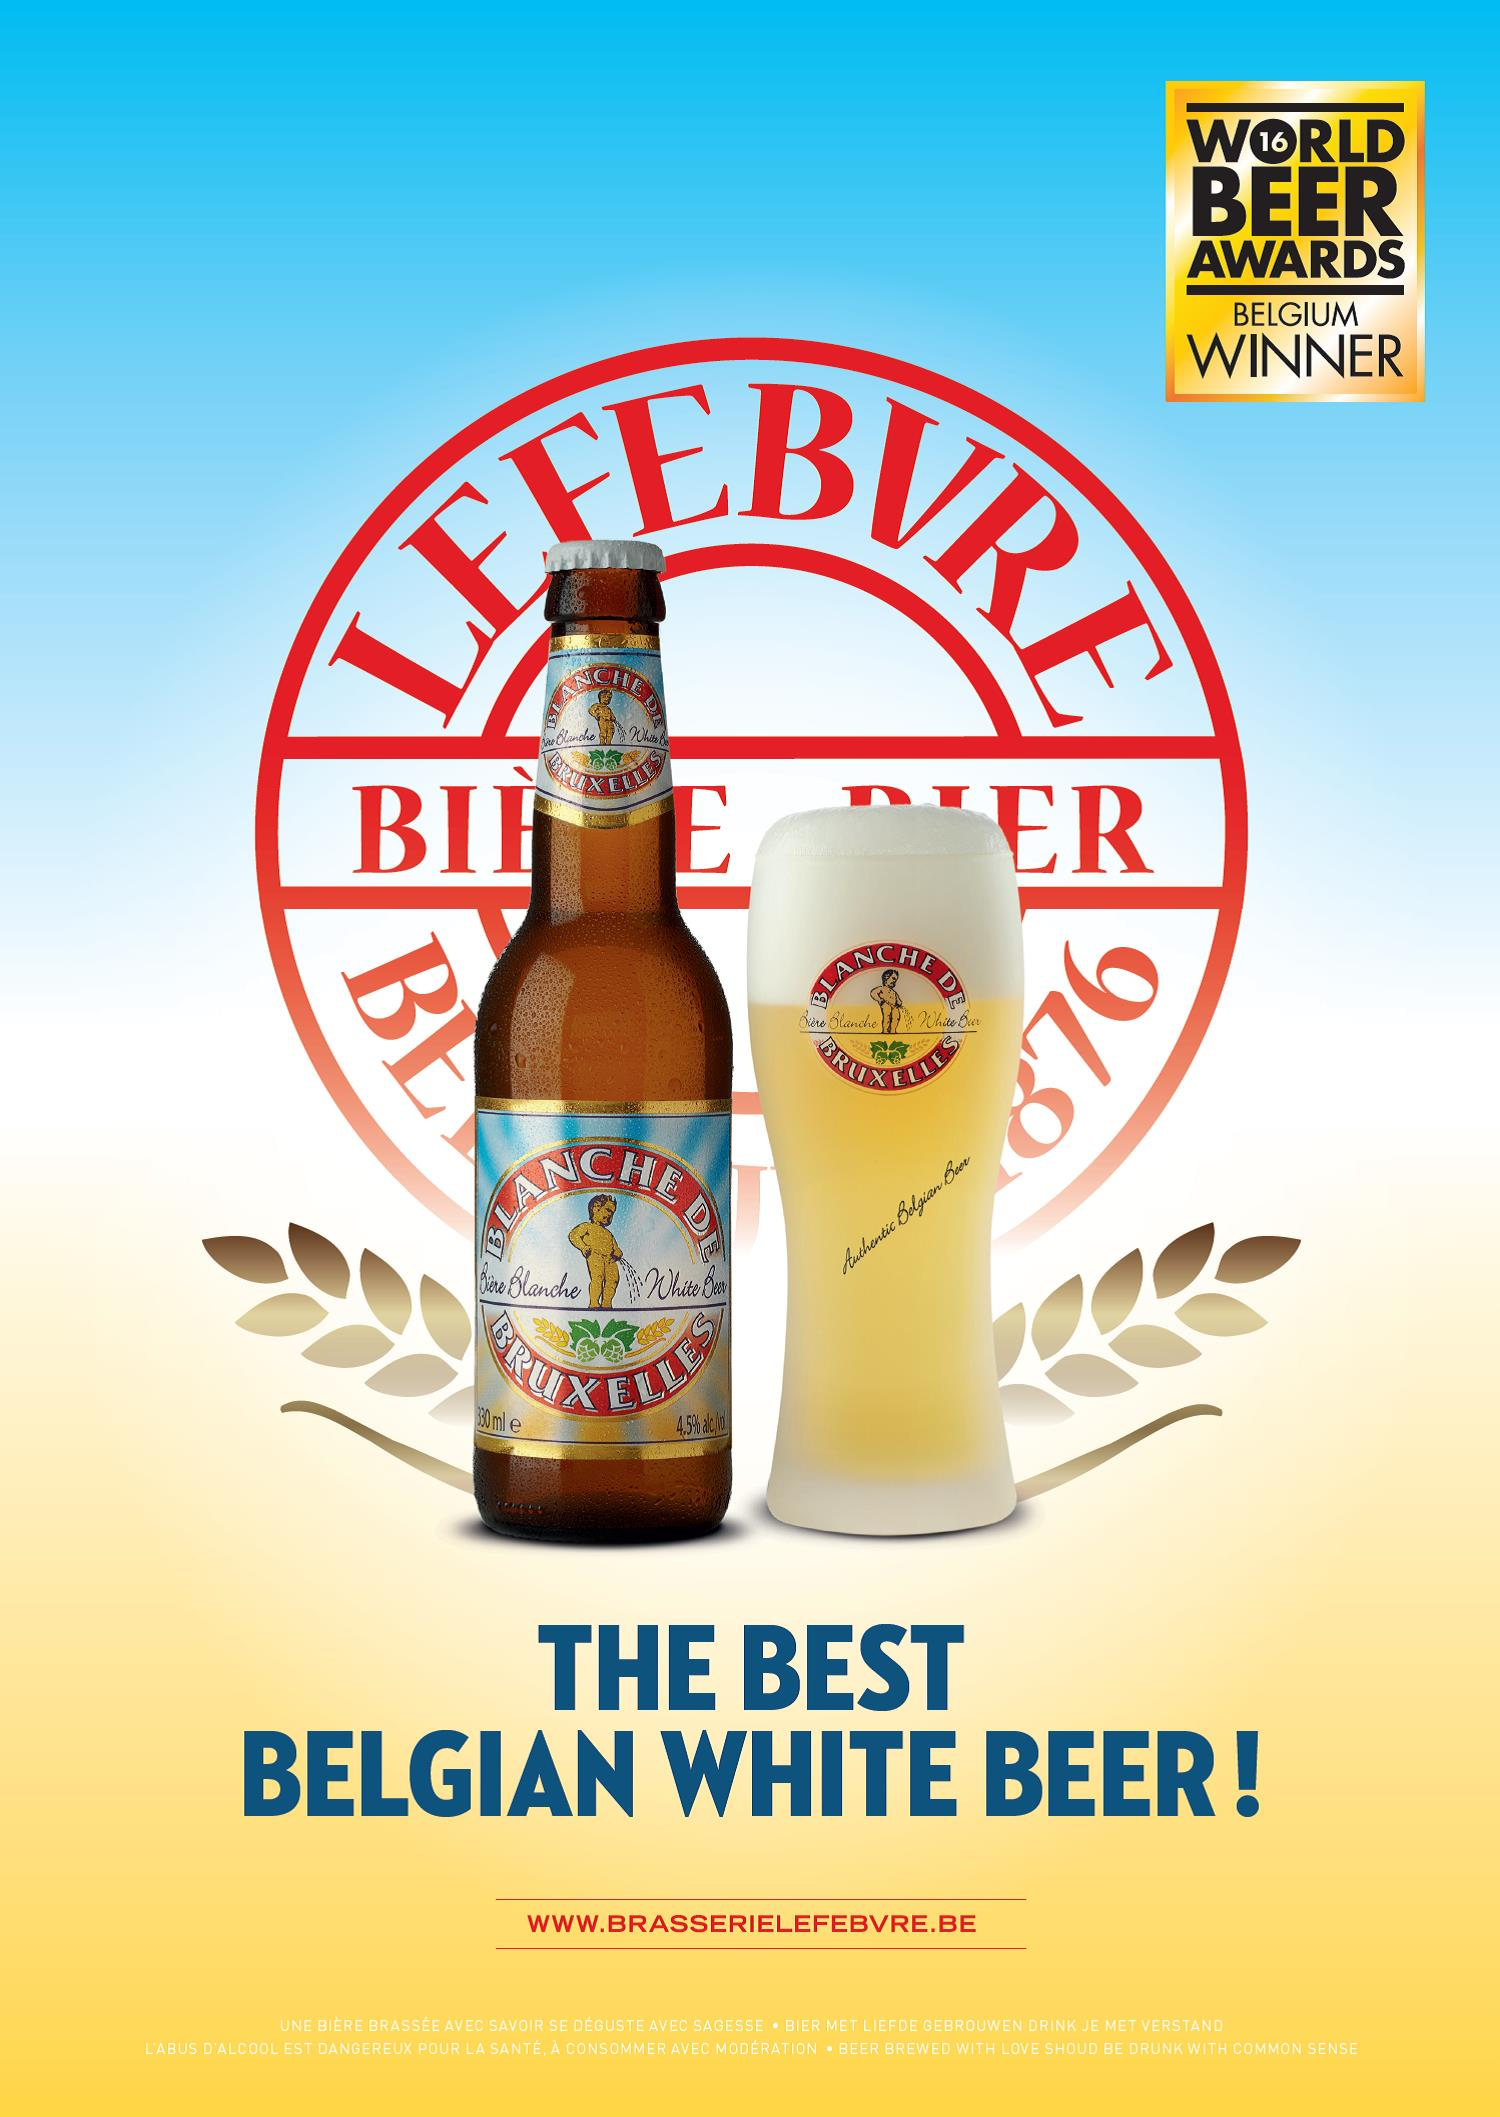 Lefebvre World Best White Beer